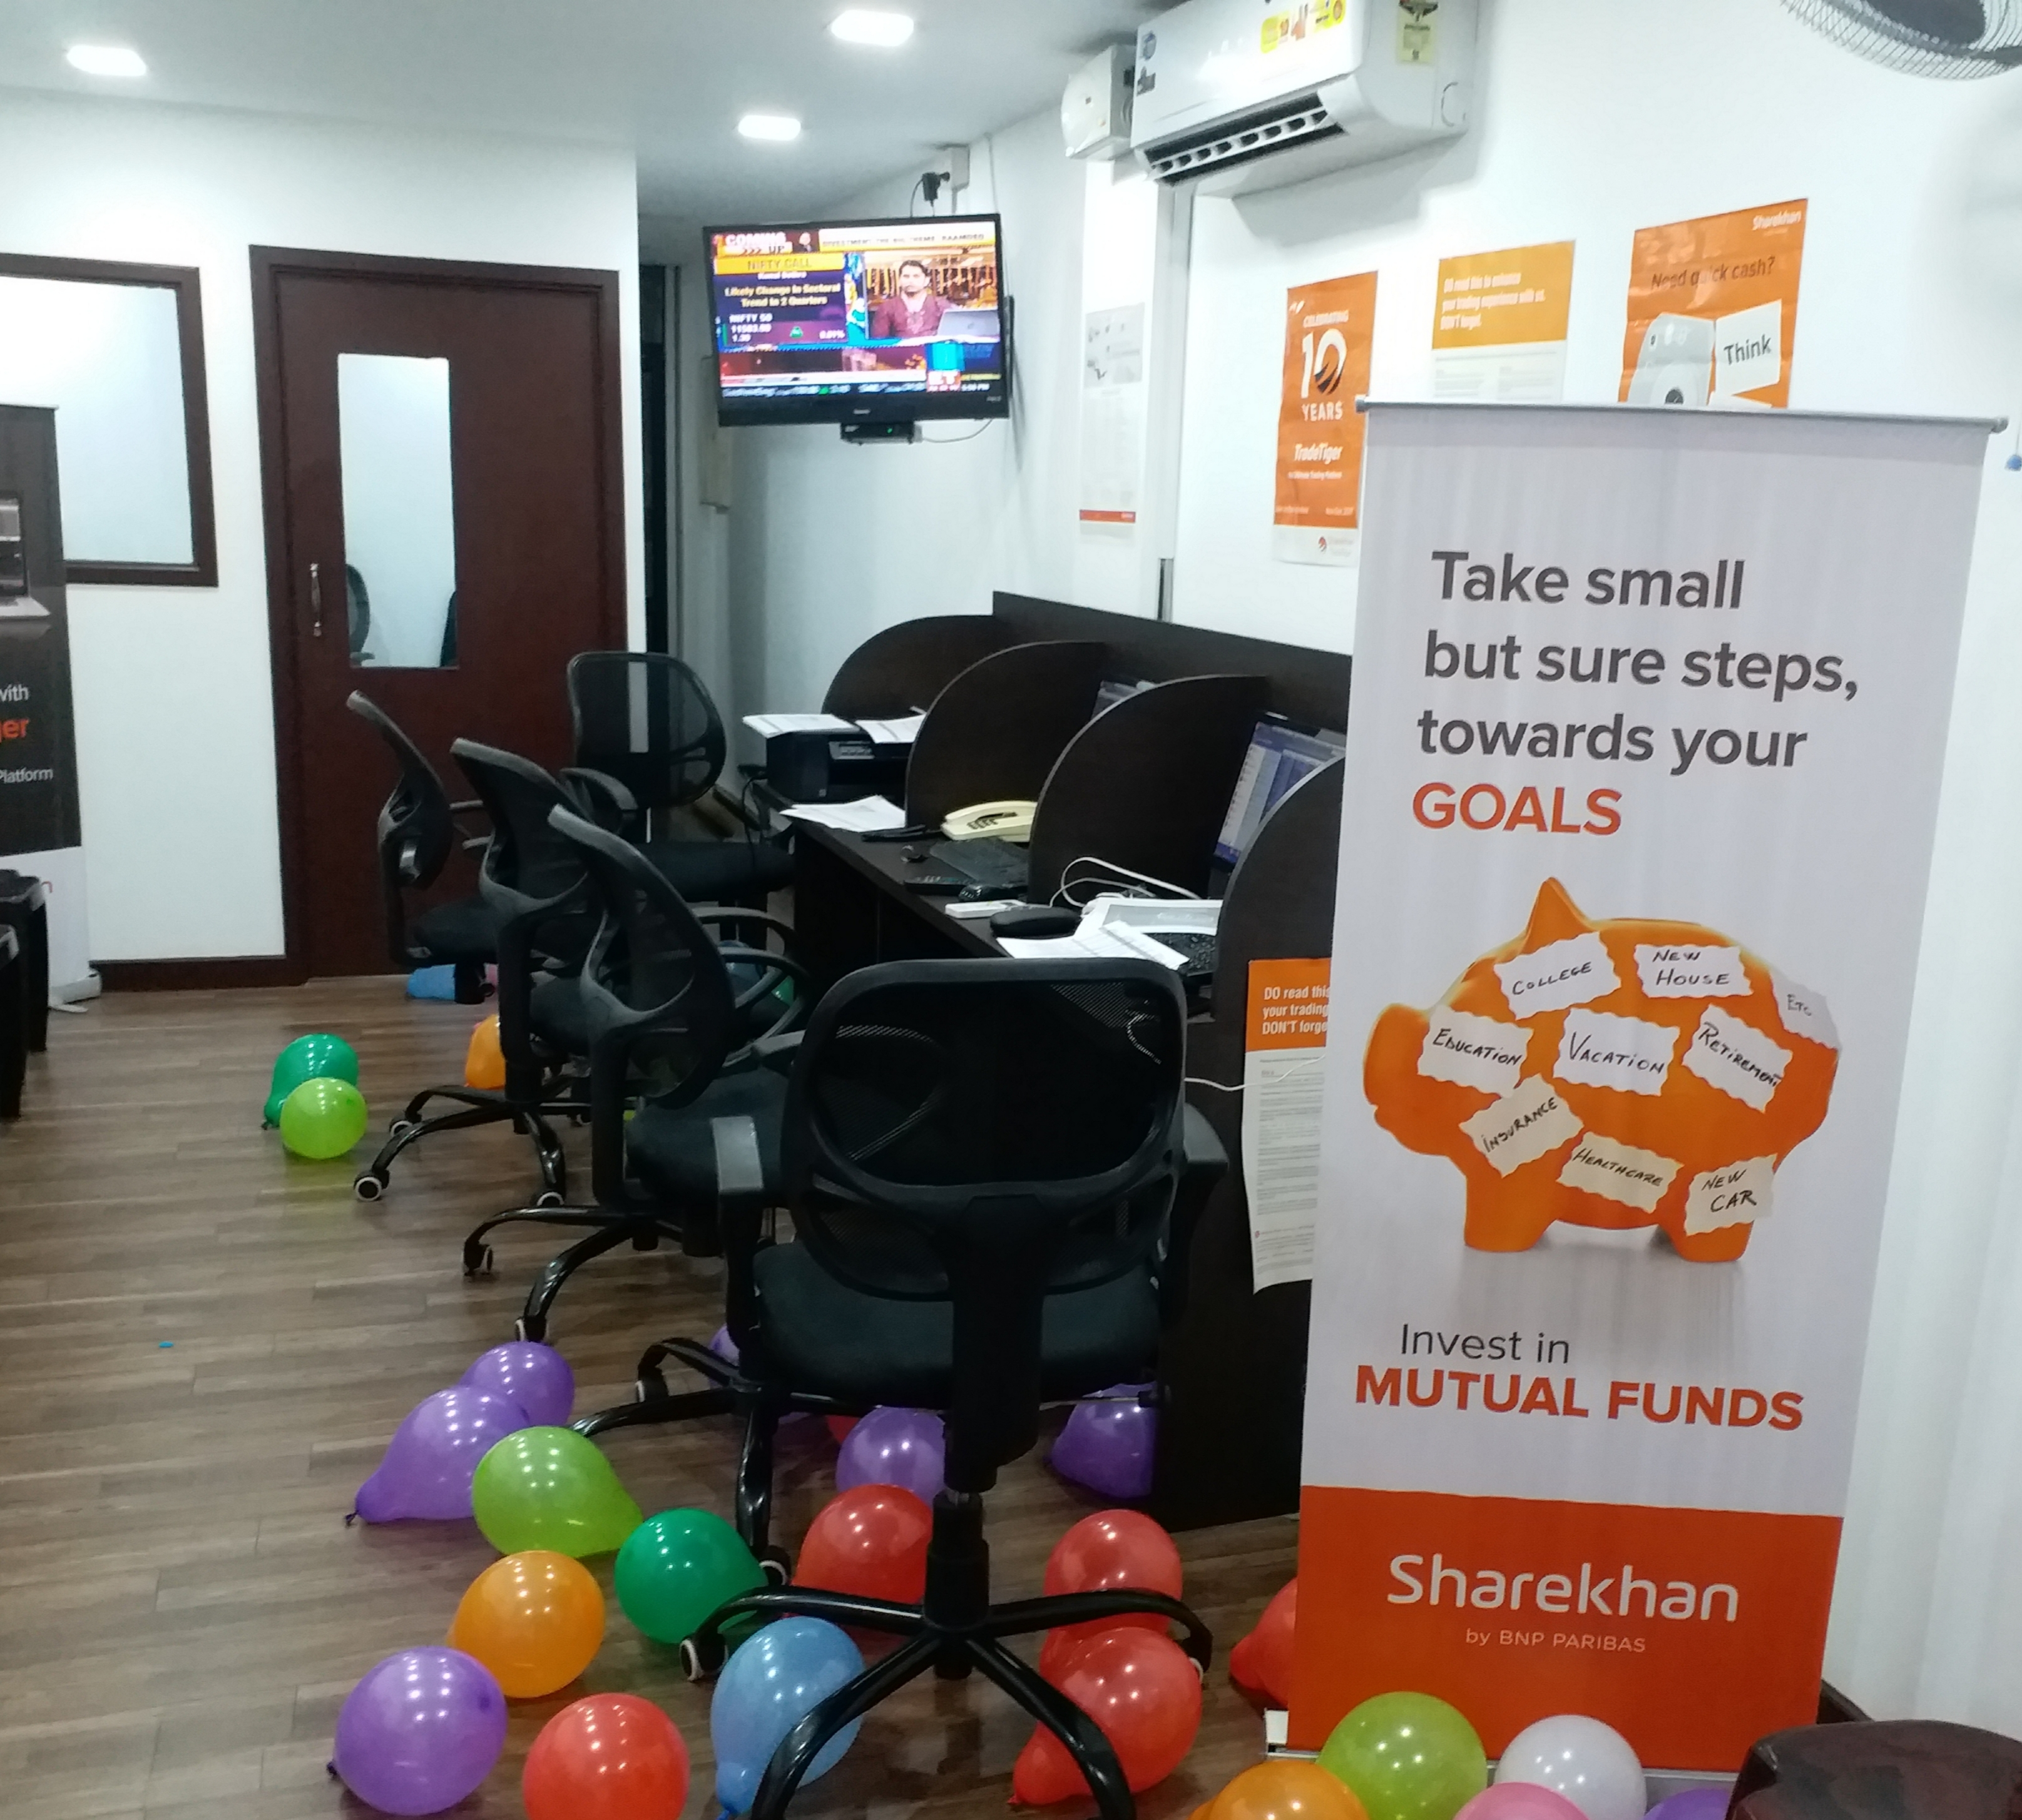 Sharekhan Ltd - South Bazar, Kannur